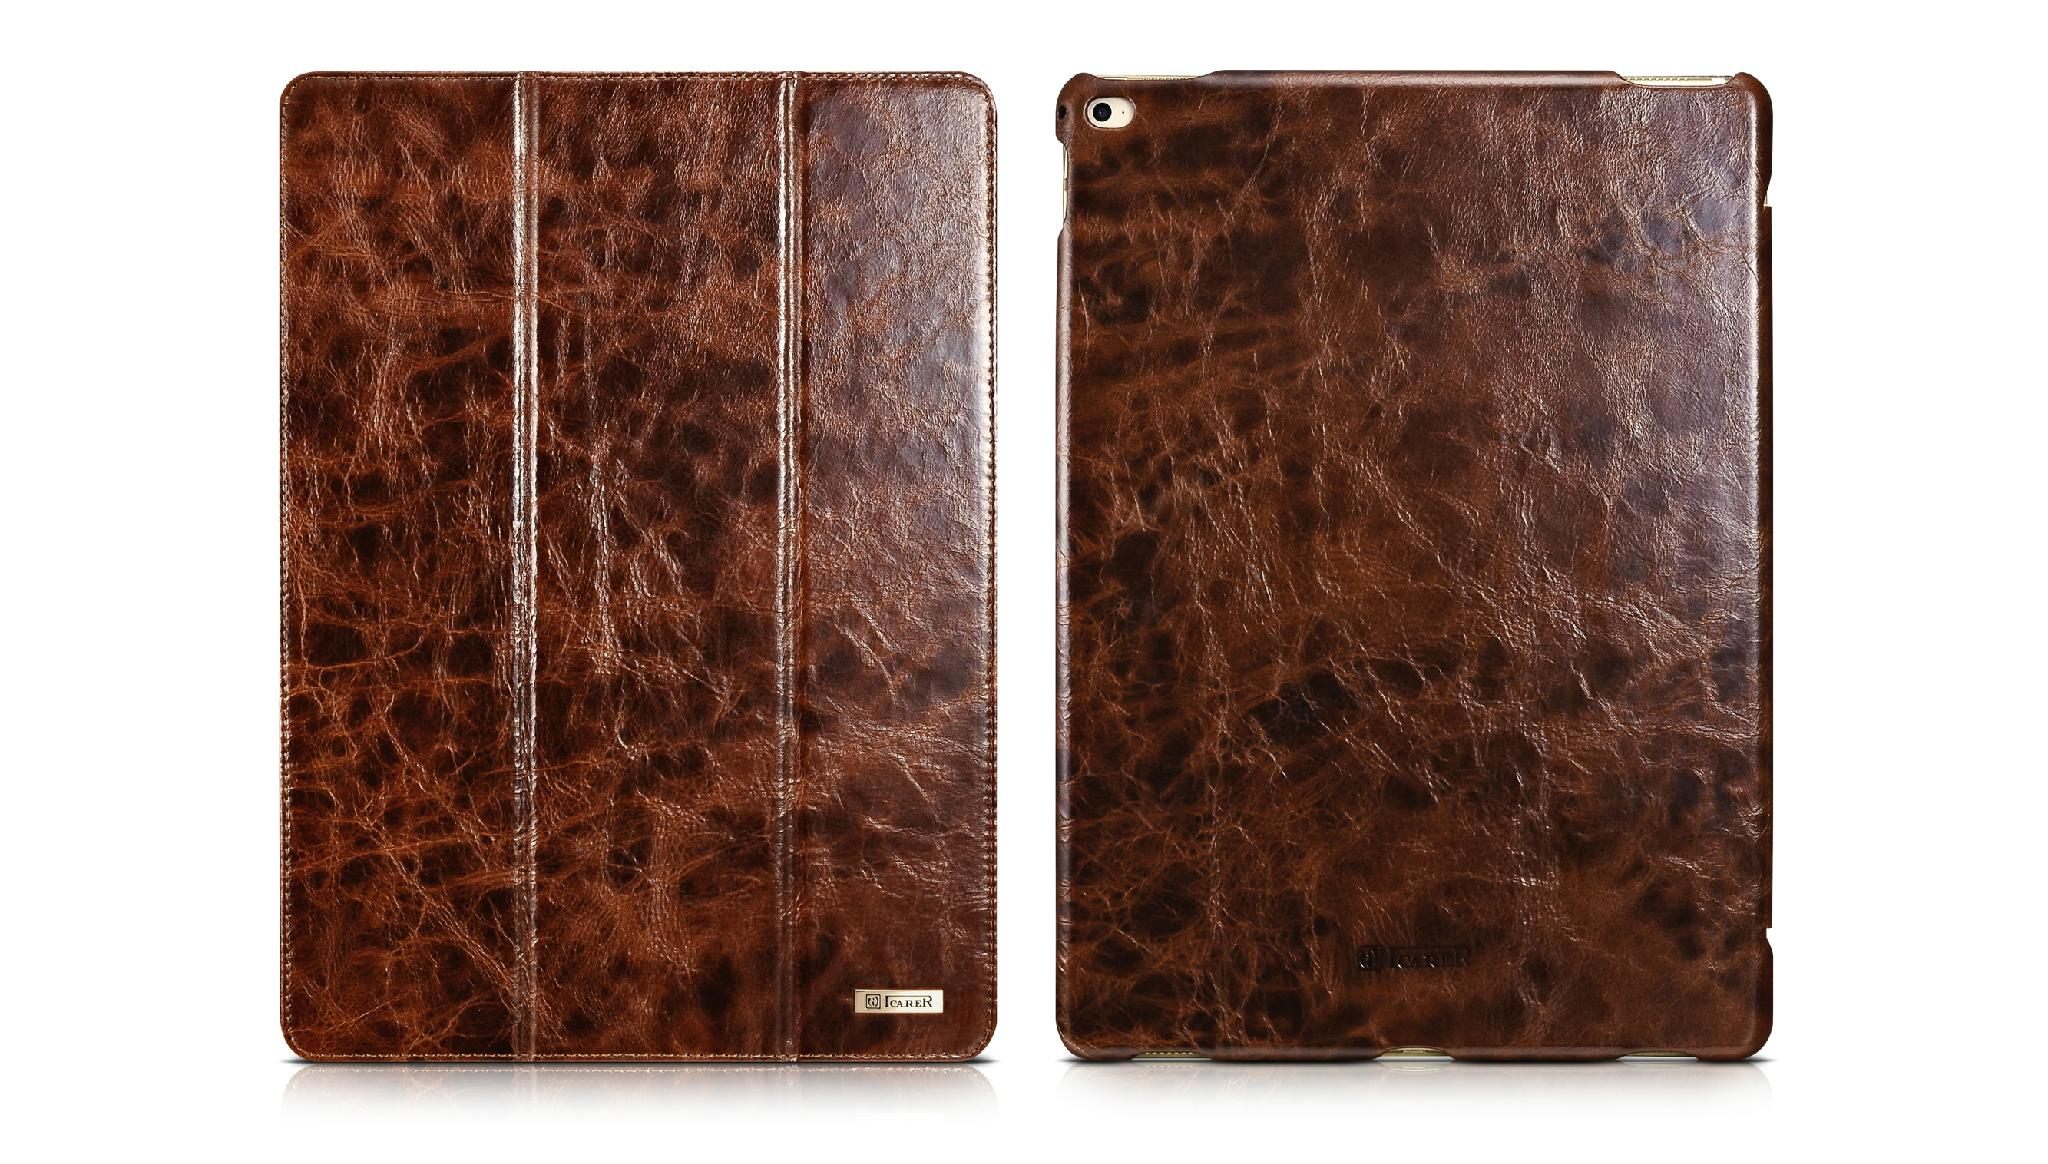 iCarer iPad Pro 12.9 inch Oil Wax Vintage Genuine Leather Folio Case 4